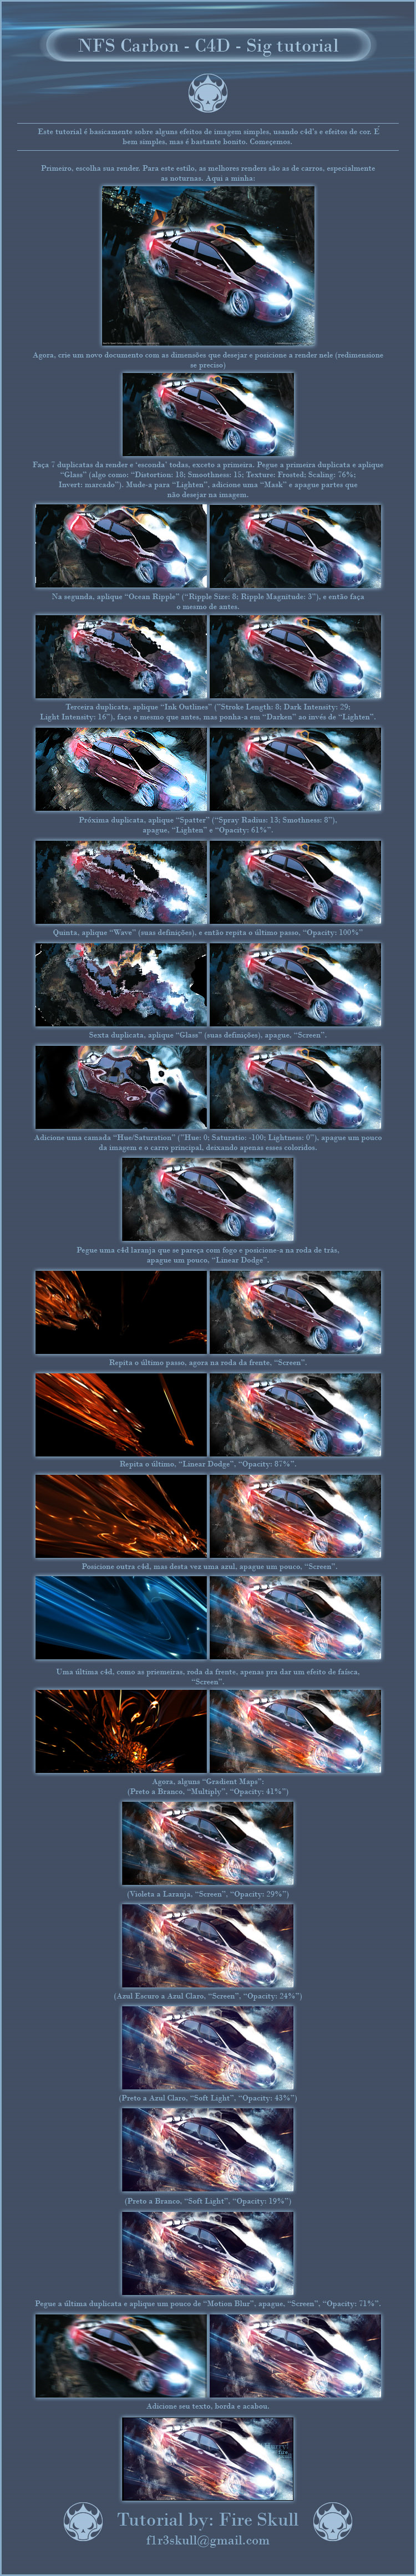 NFS Carbon C4D Sig tutorial EN by f1r3skull.